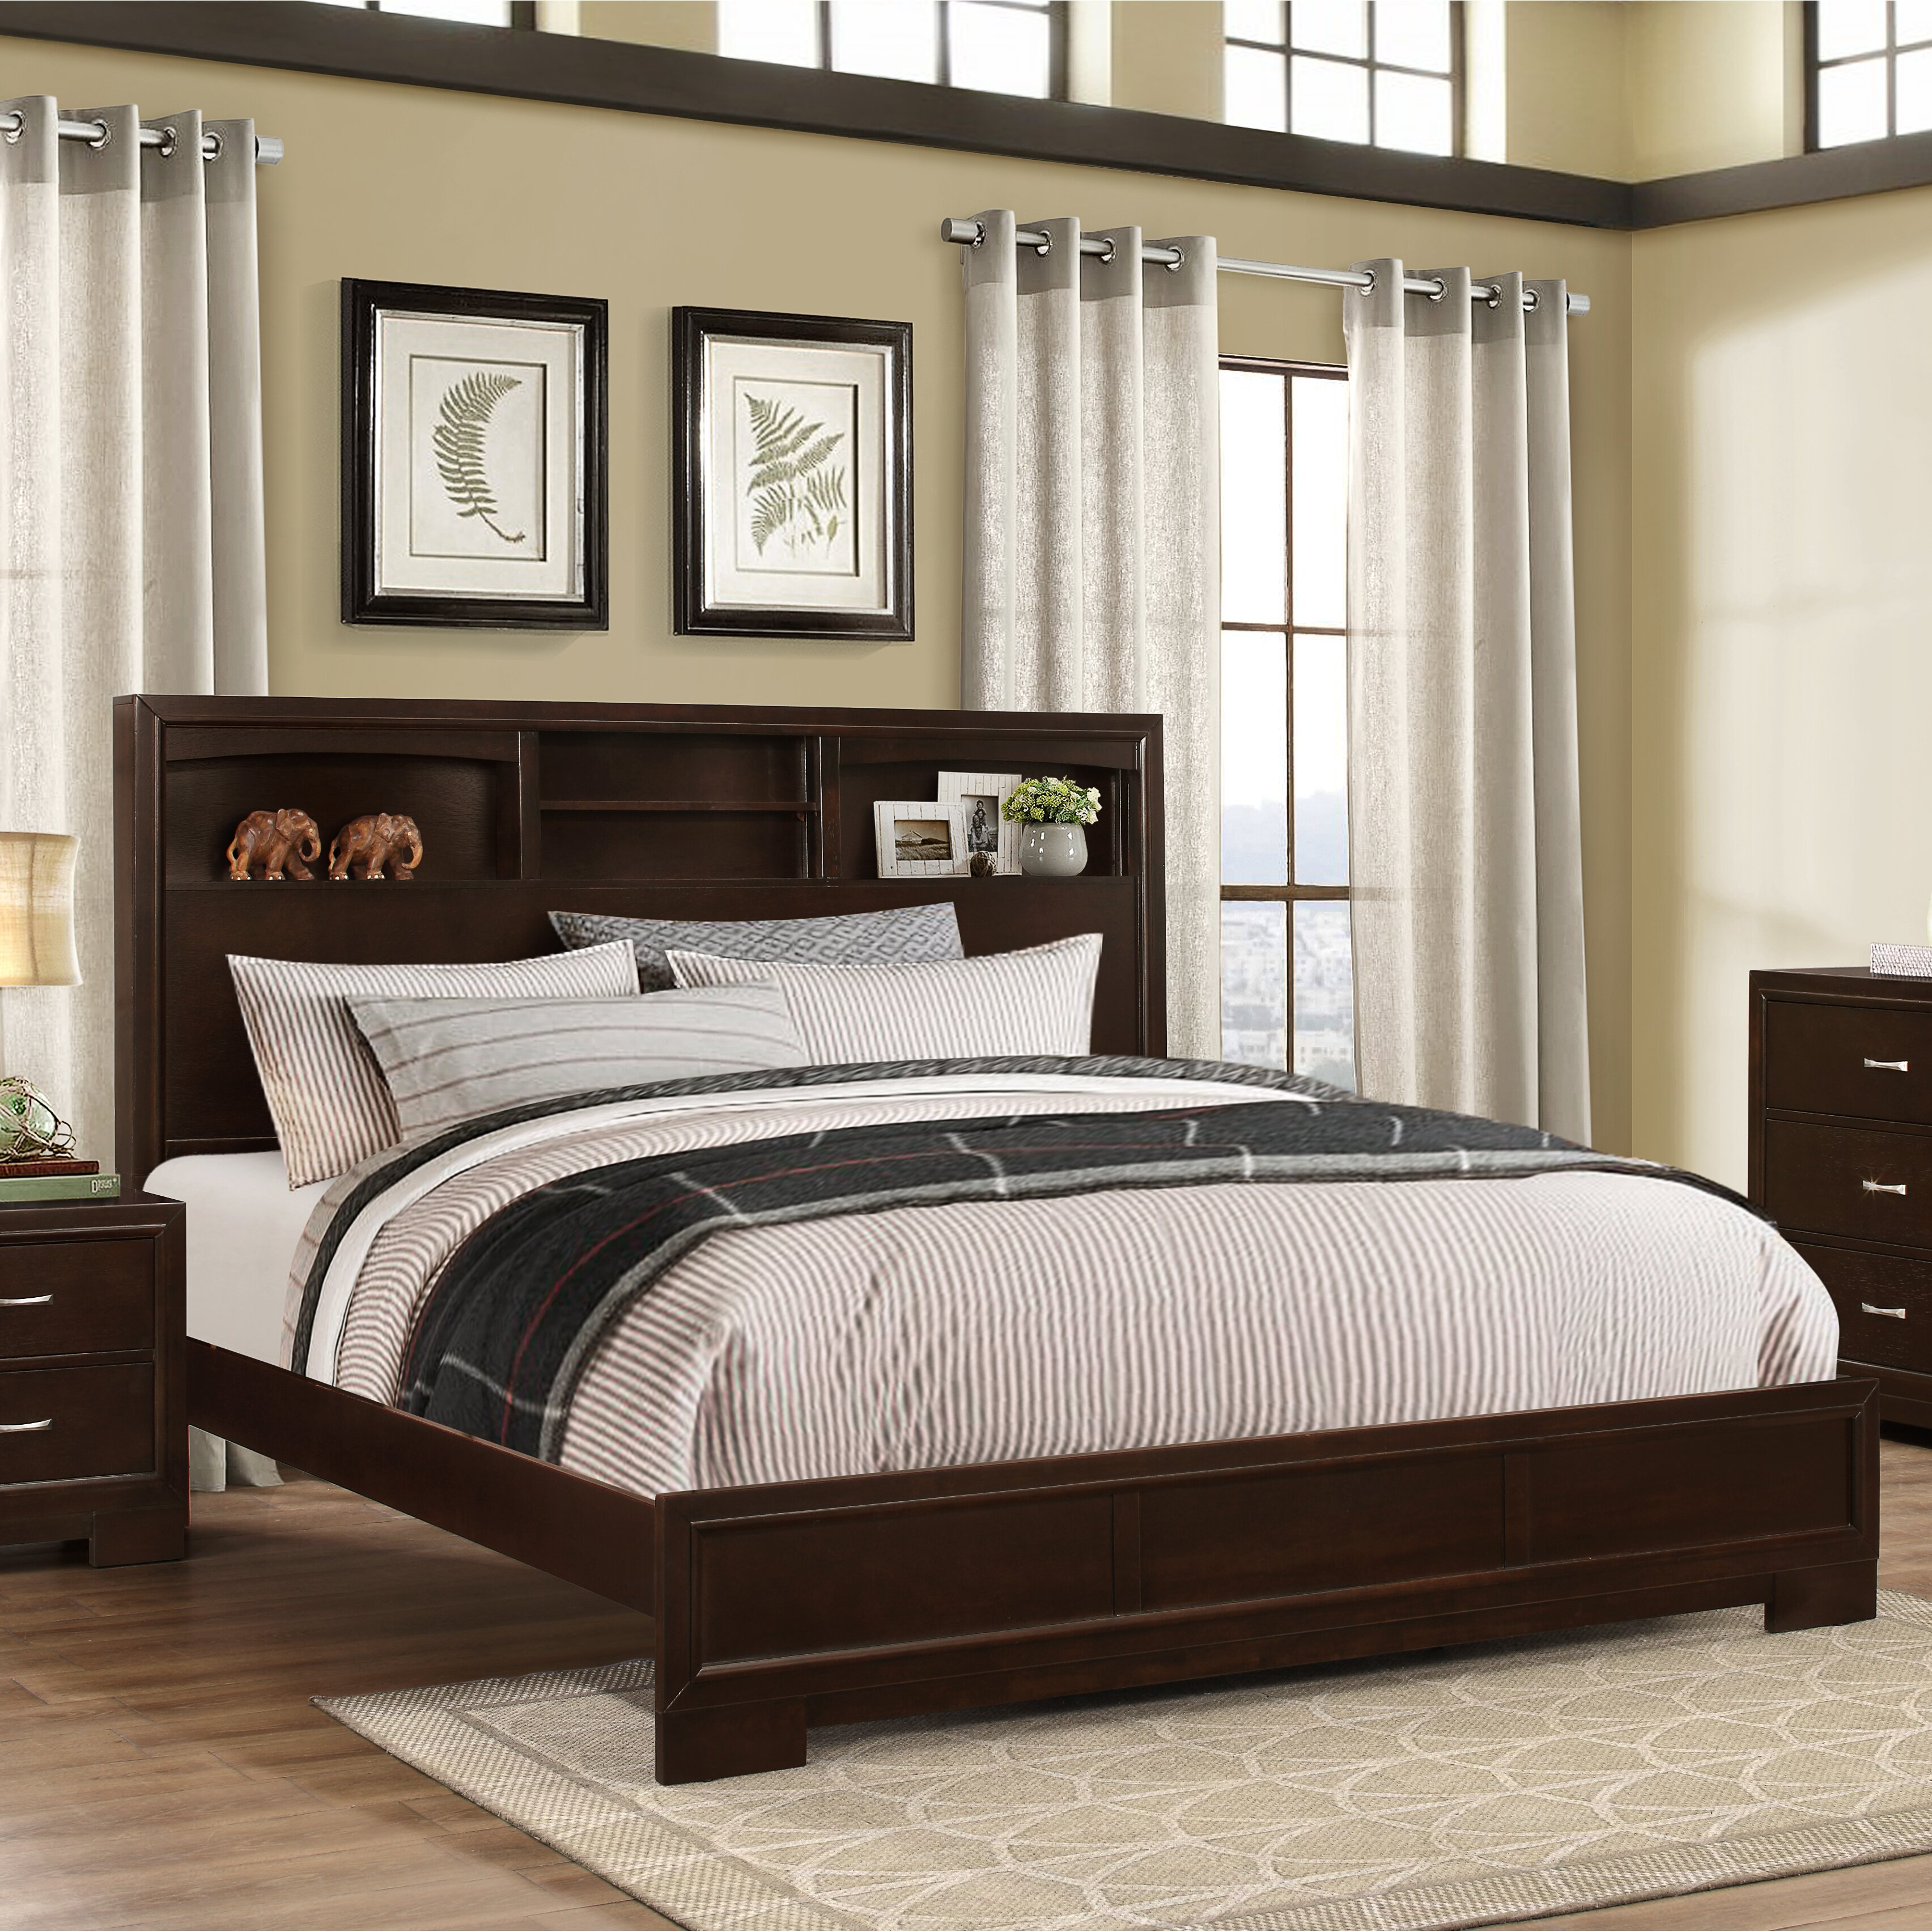 Roundhill Furniture Montana Panel 5 Piece Bedroom Set Reviews Wayfair